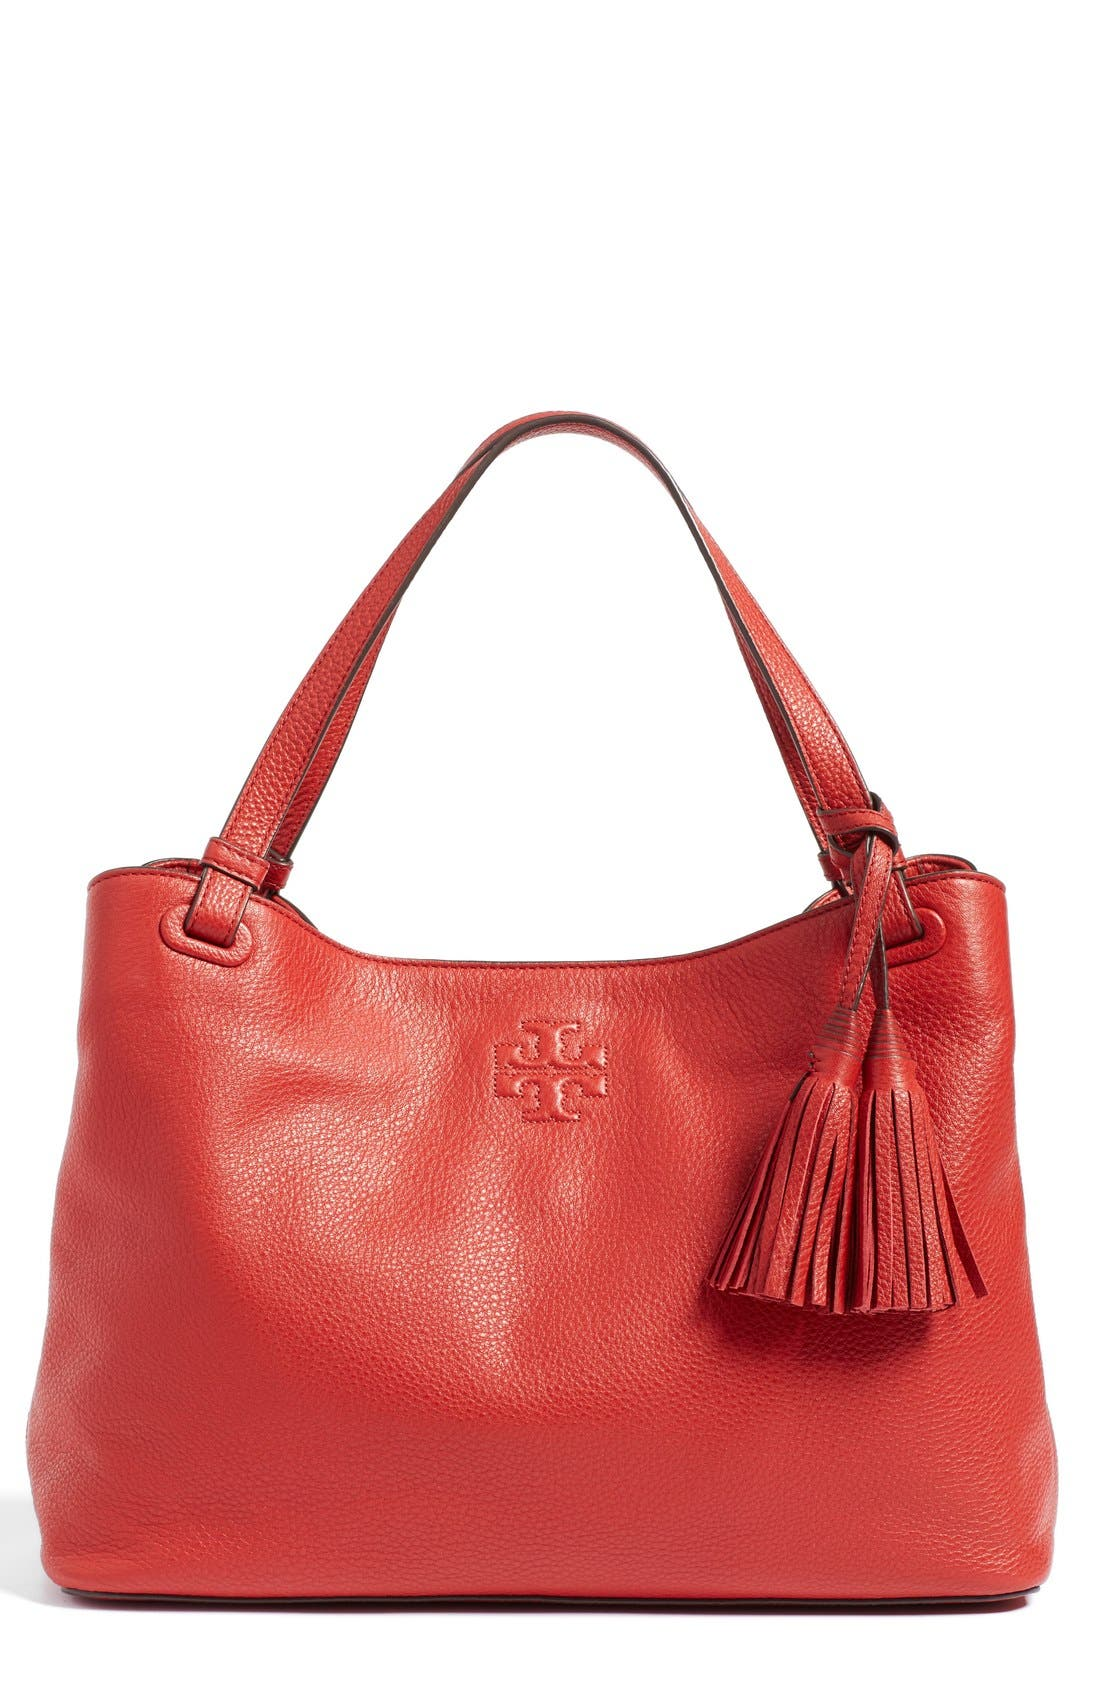 Main Image - Tory Burch 'Thea' Tassel Leather Tote